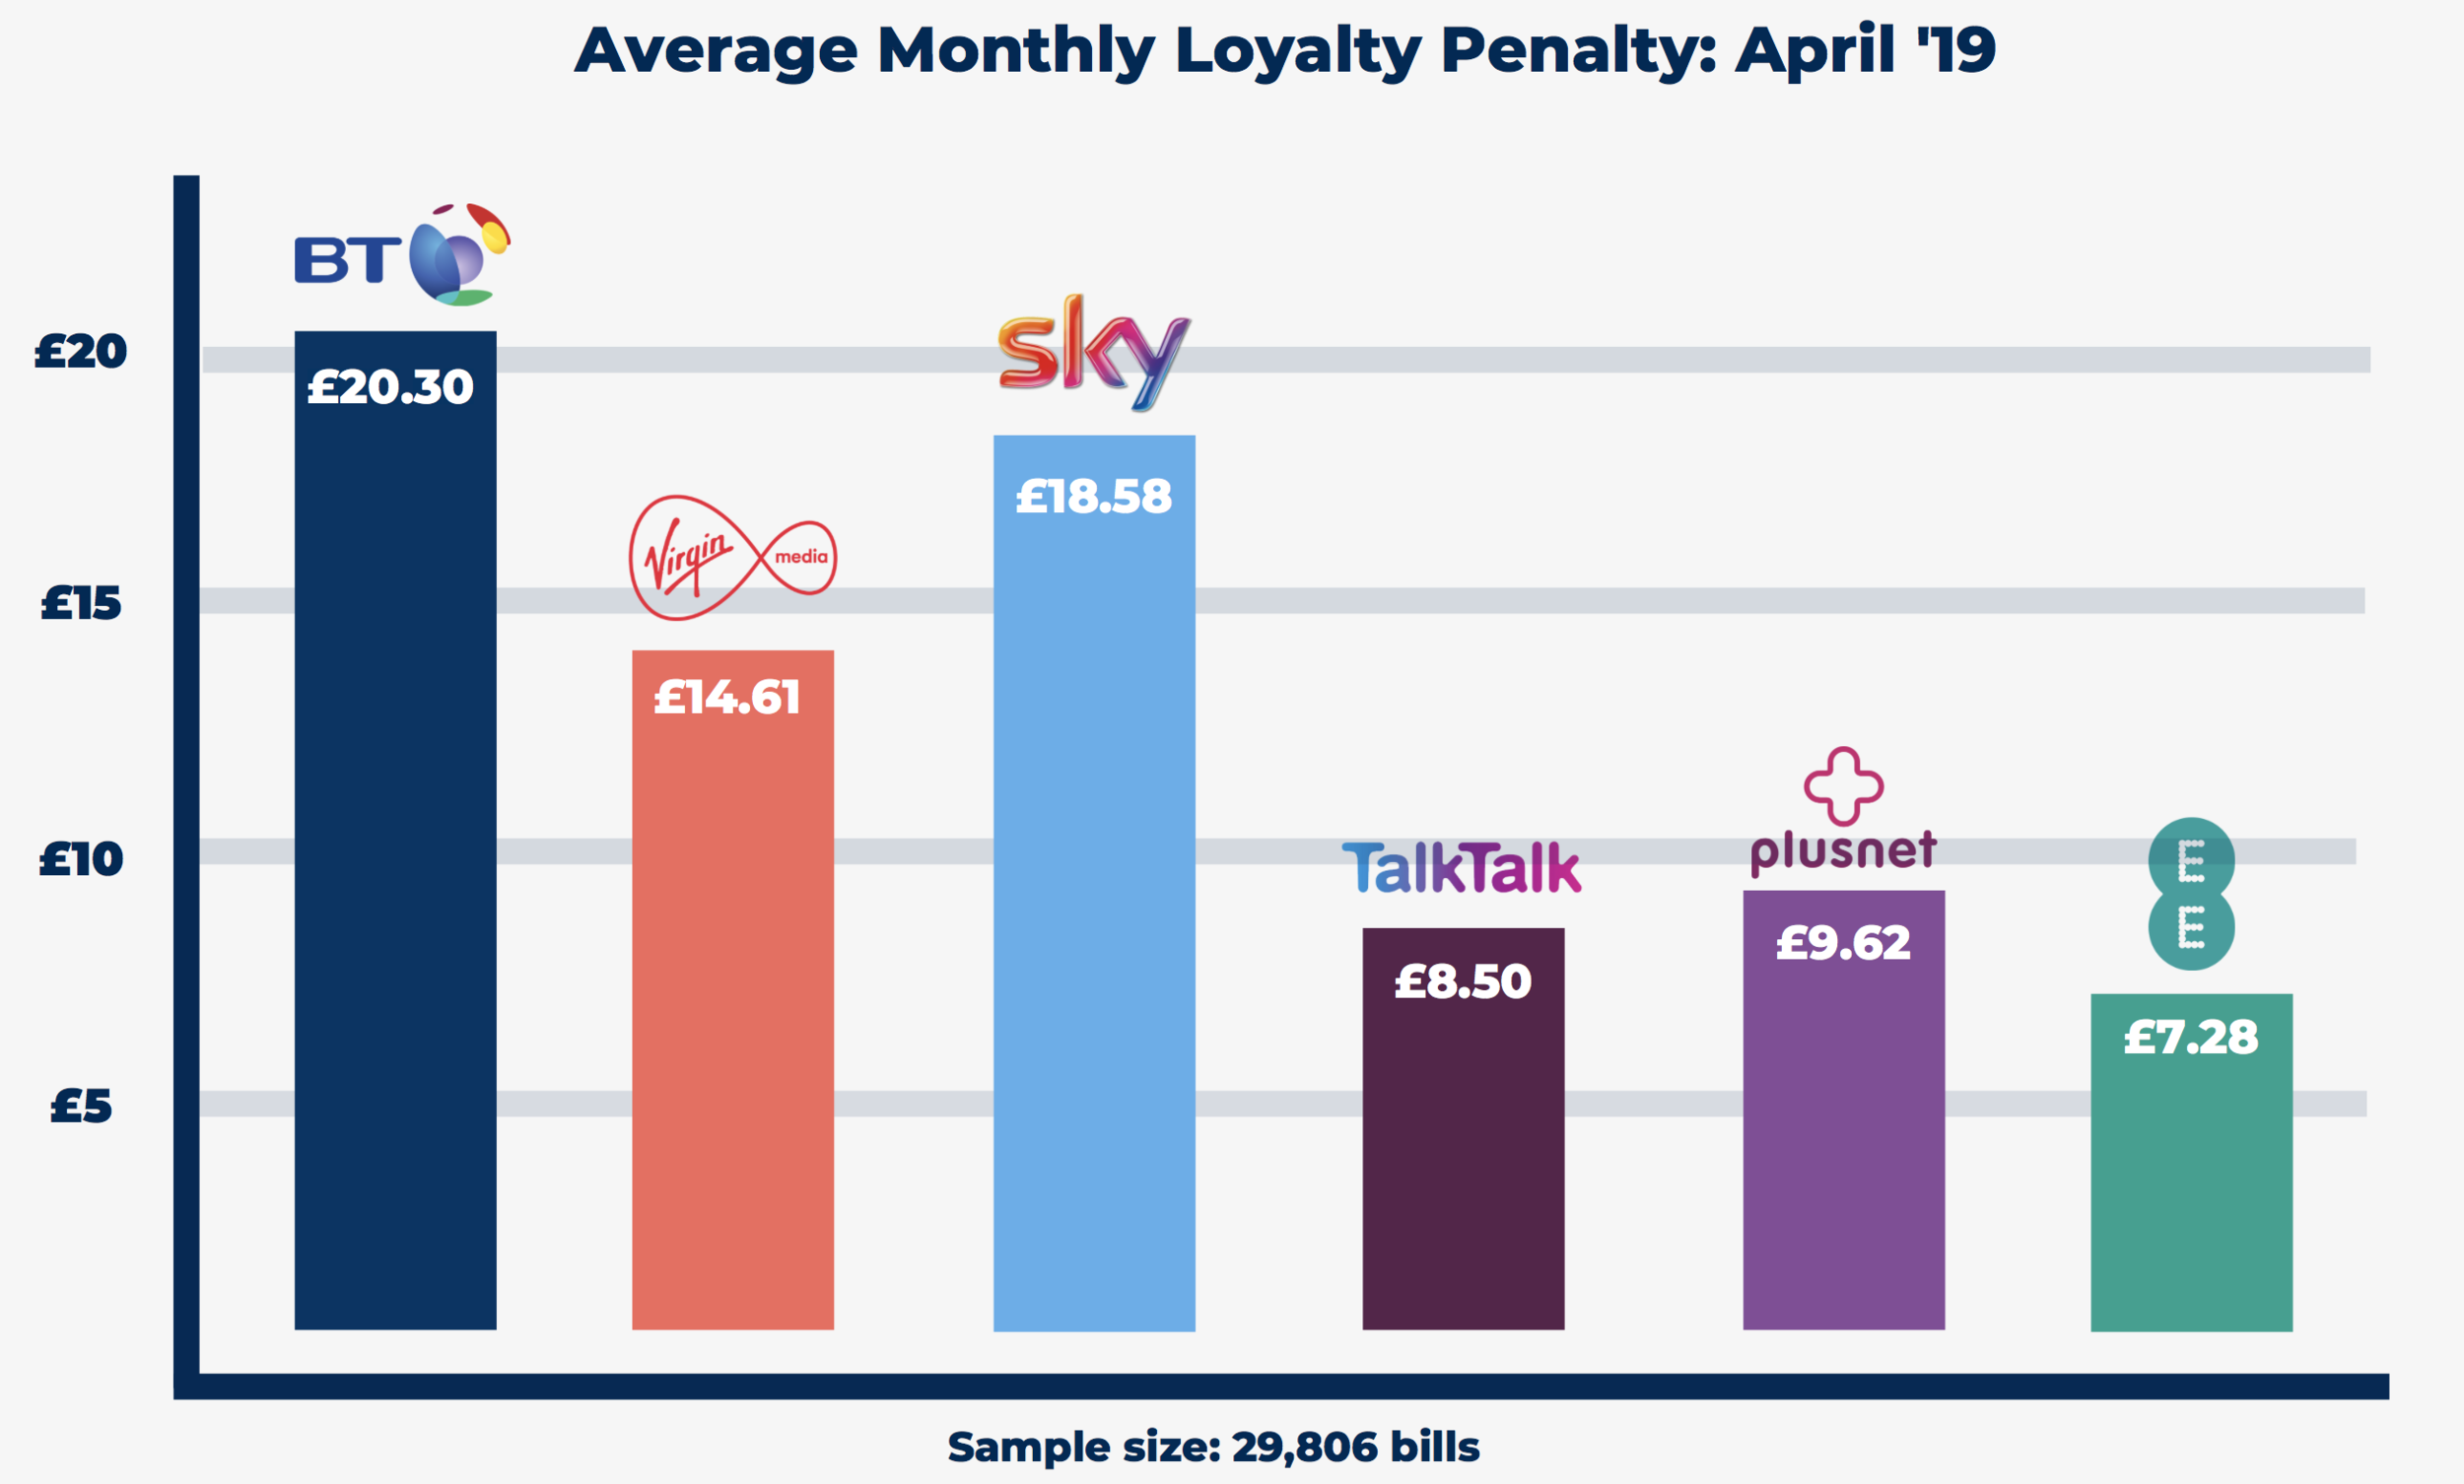 The average monthly Loyalty Penalty per provide for broadband in April 2019.